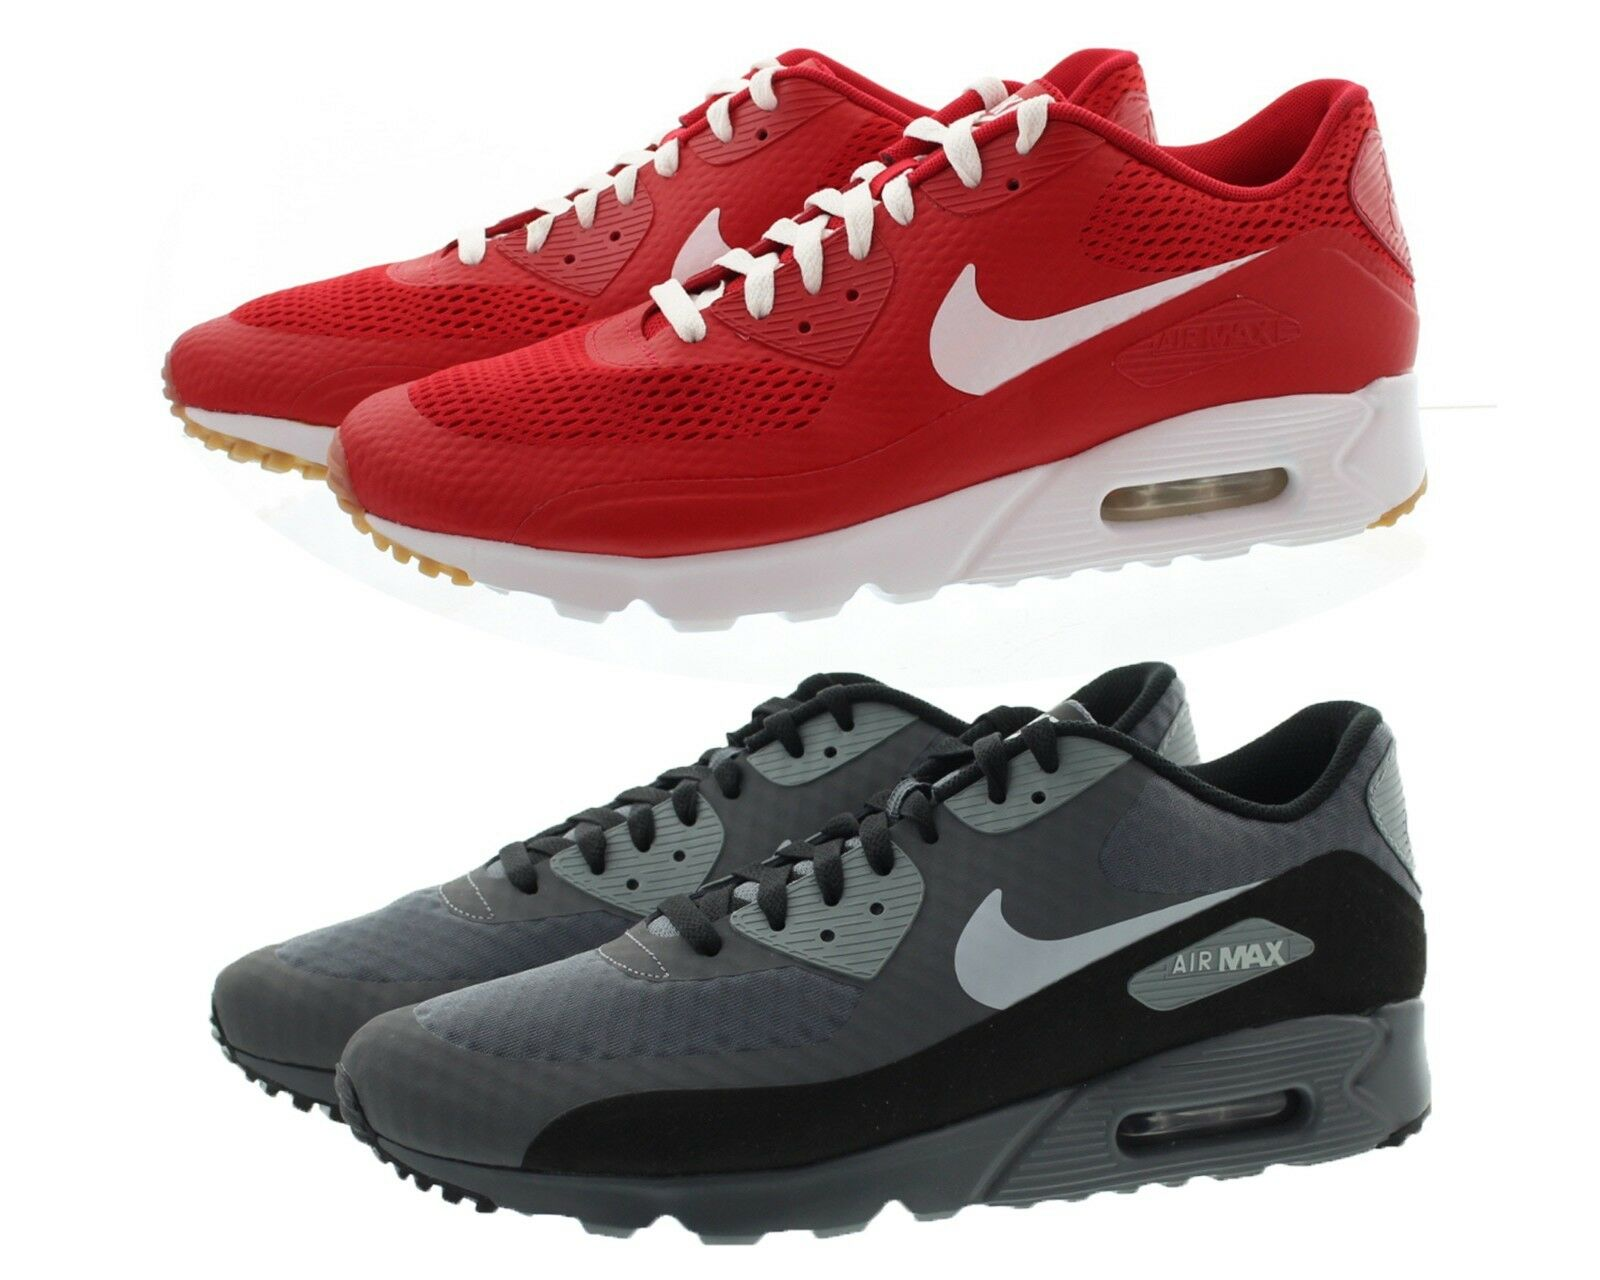 check out 135ab 0107f Nike 819474 Mens Air Max 90 Ultra Essential Low Low Low Top Running Shoes  Sneakers 561821